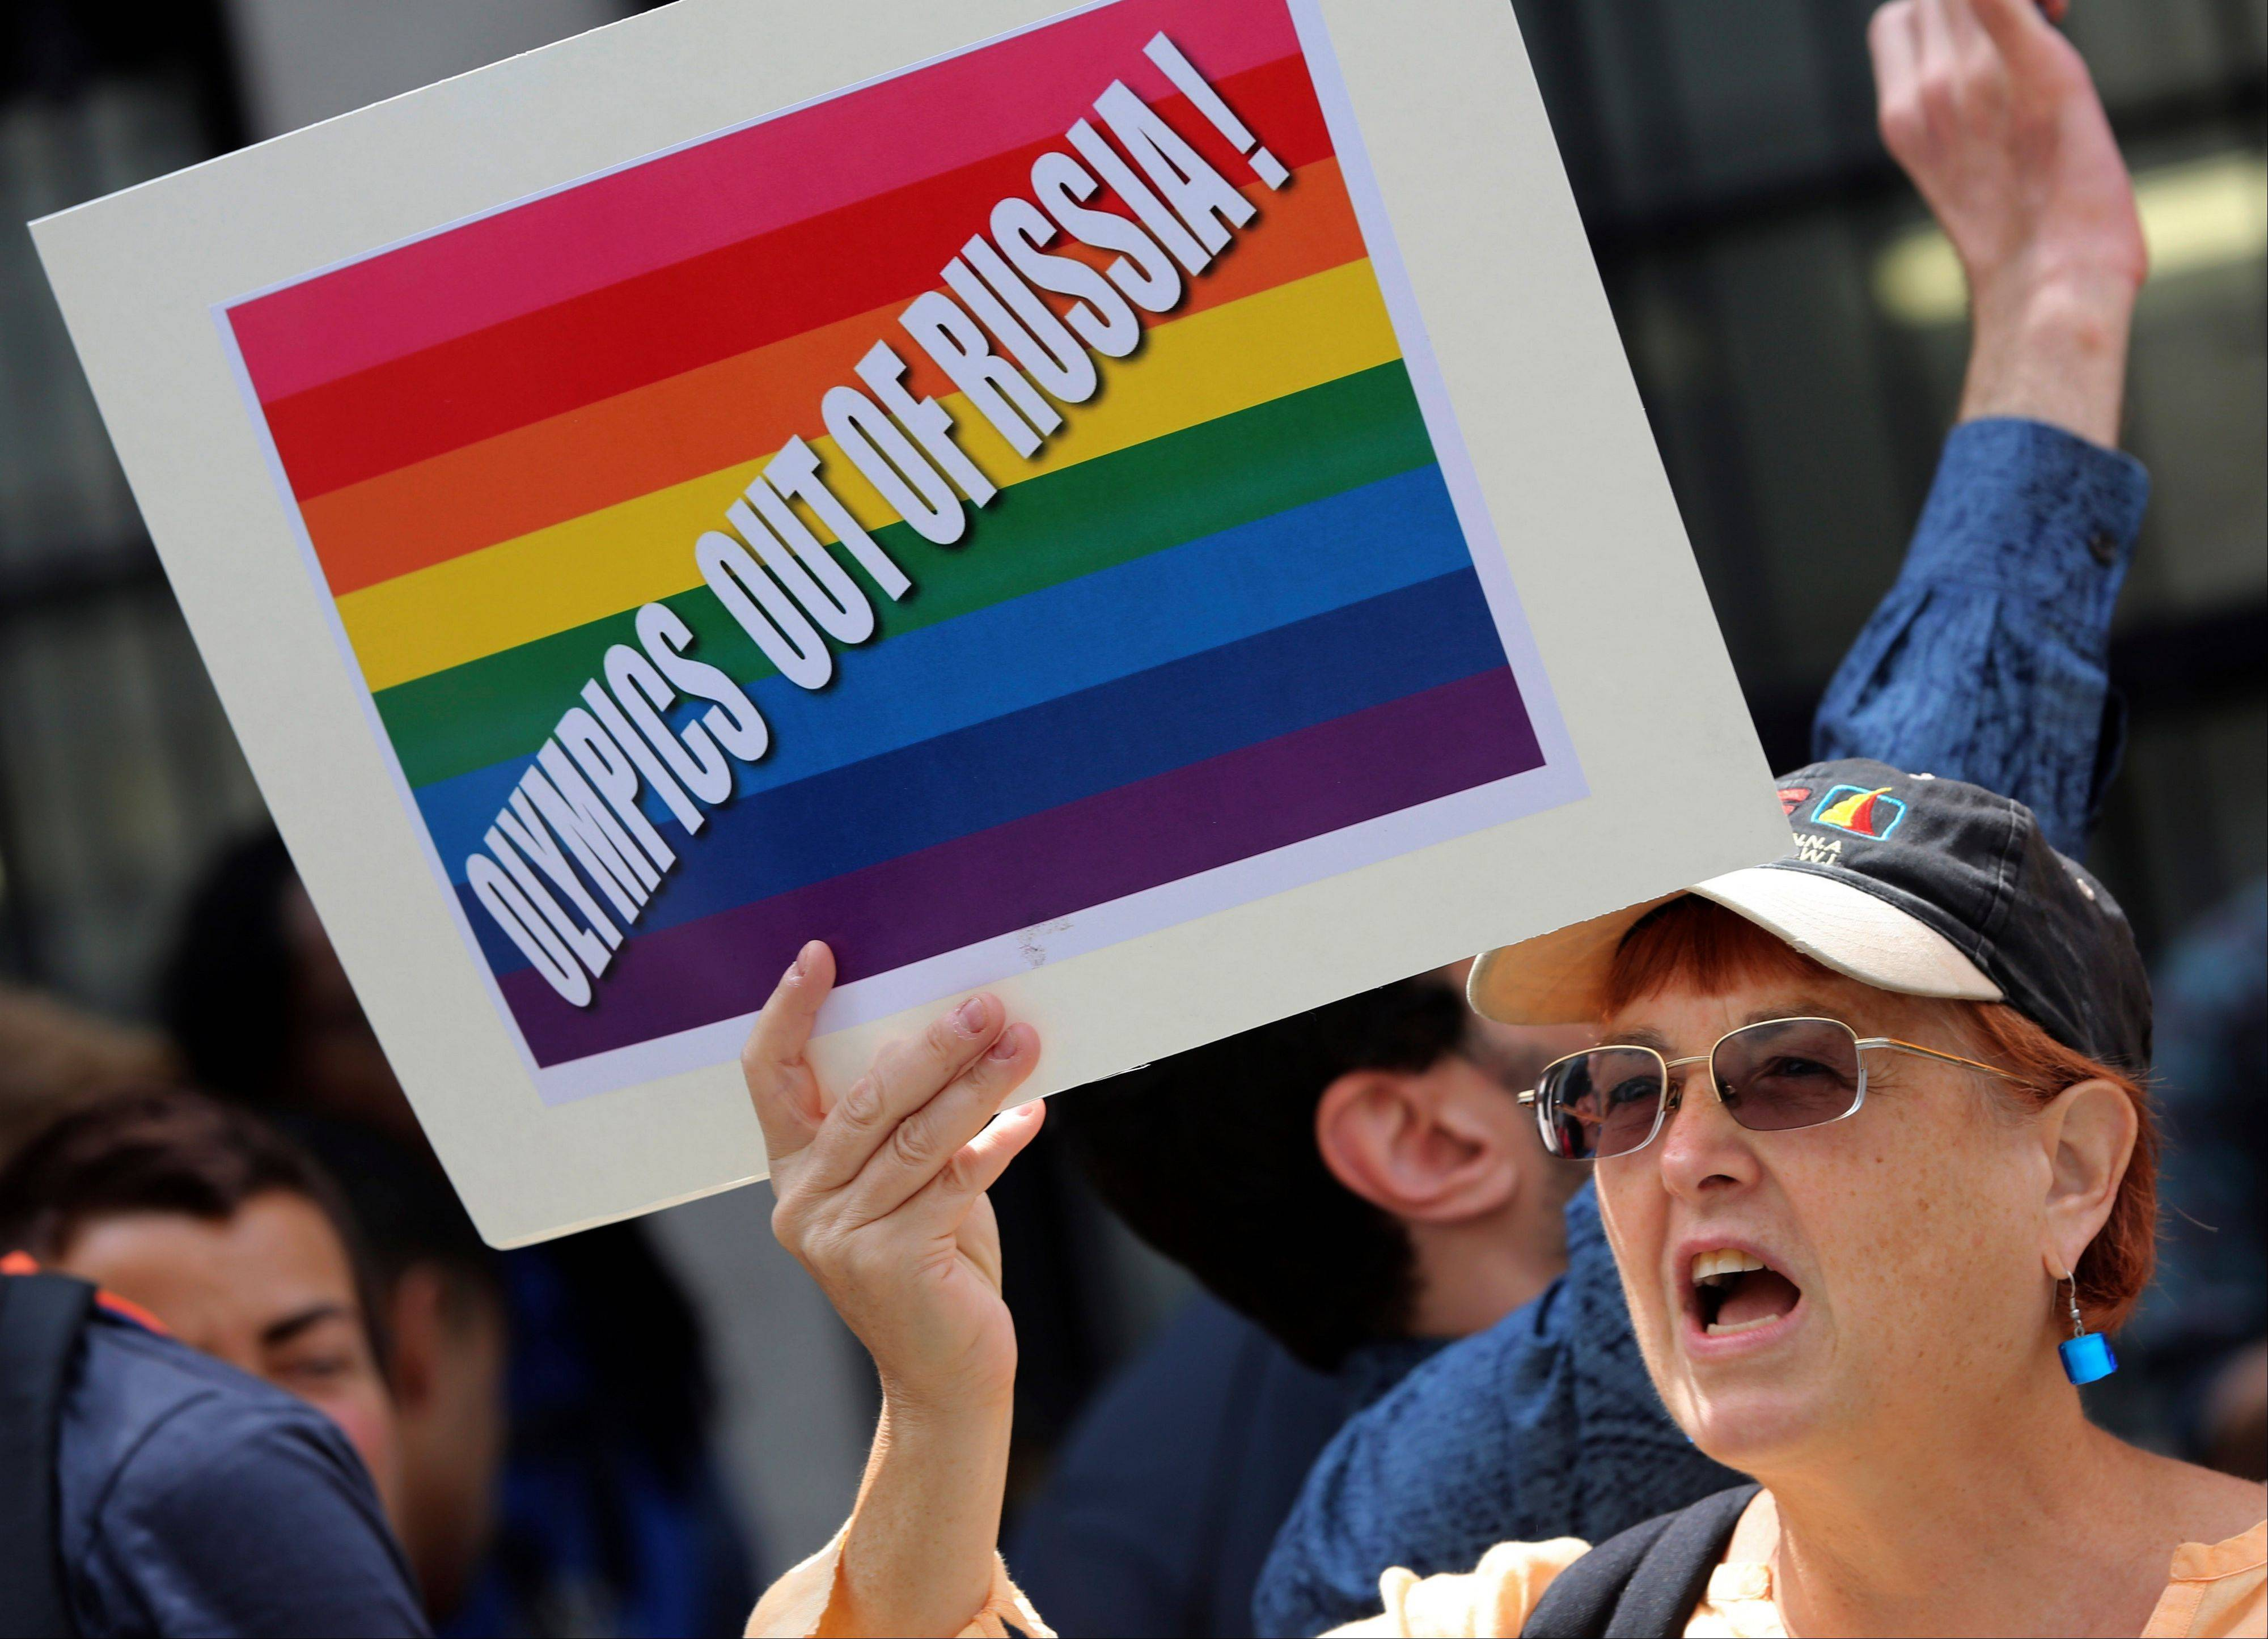 A gay rights activist chant slogans during a demonstration in front of the Russian consulate in New York, Wednesday, July 31, 2013. Russian vodka and the Winter Olympics in Sochi are the prime targets as gays in the United States and elsewhere propose boycotts and other tactics to convey their outrage over Russia�s intensifying campaign against gay-rights activism.